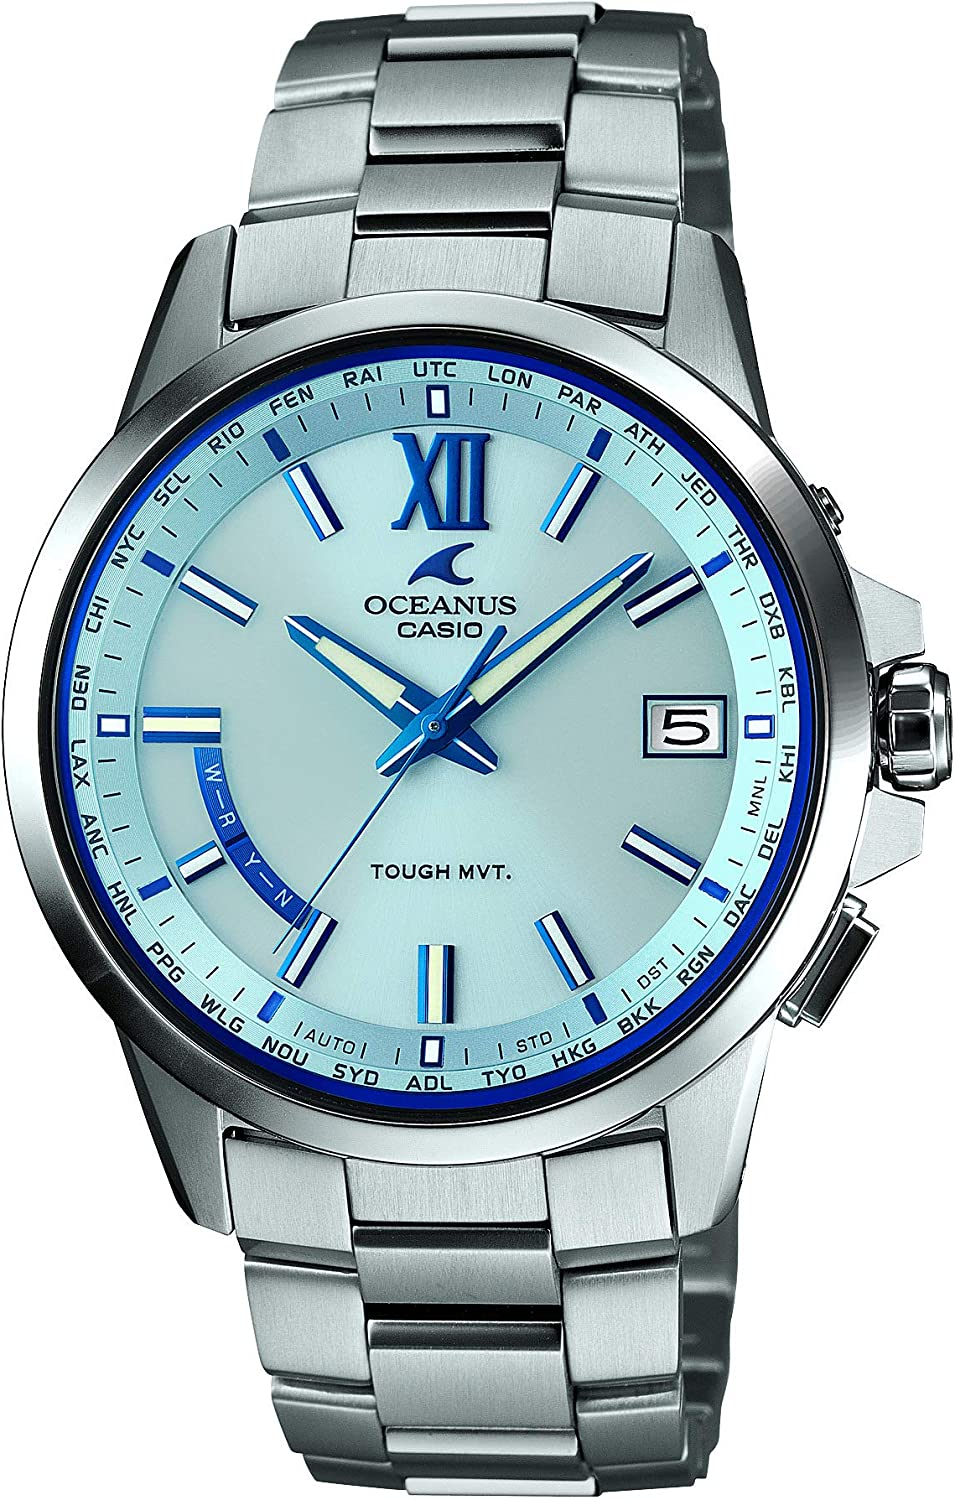 Casio Oceanus OCW-T150-2AJF Multiband 6 Japan Import-No Warranty